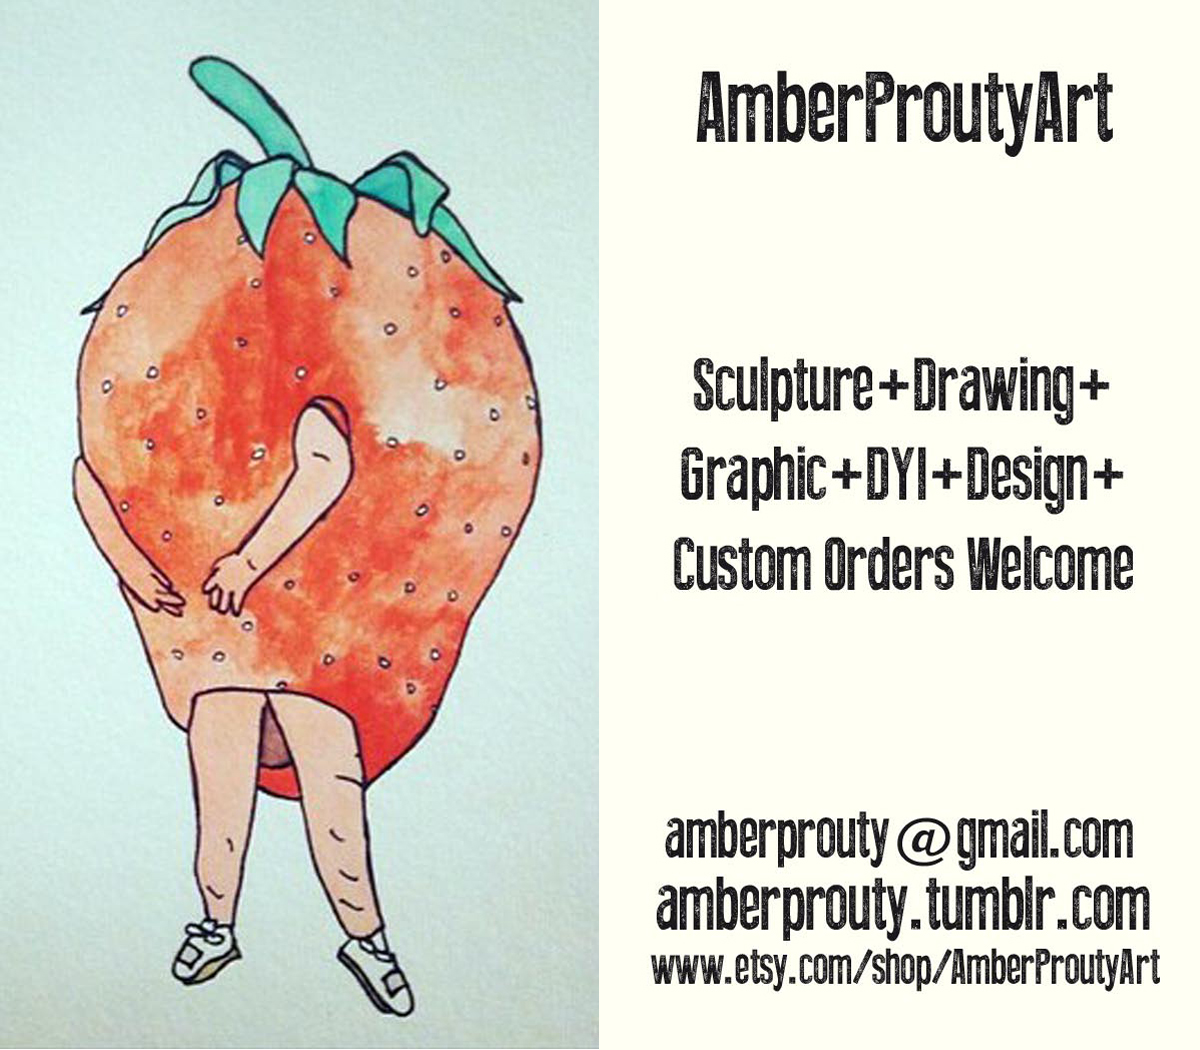 Amber Prouty Business Card